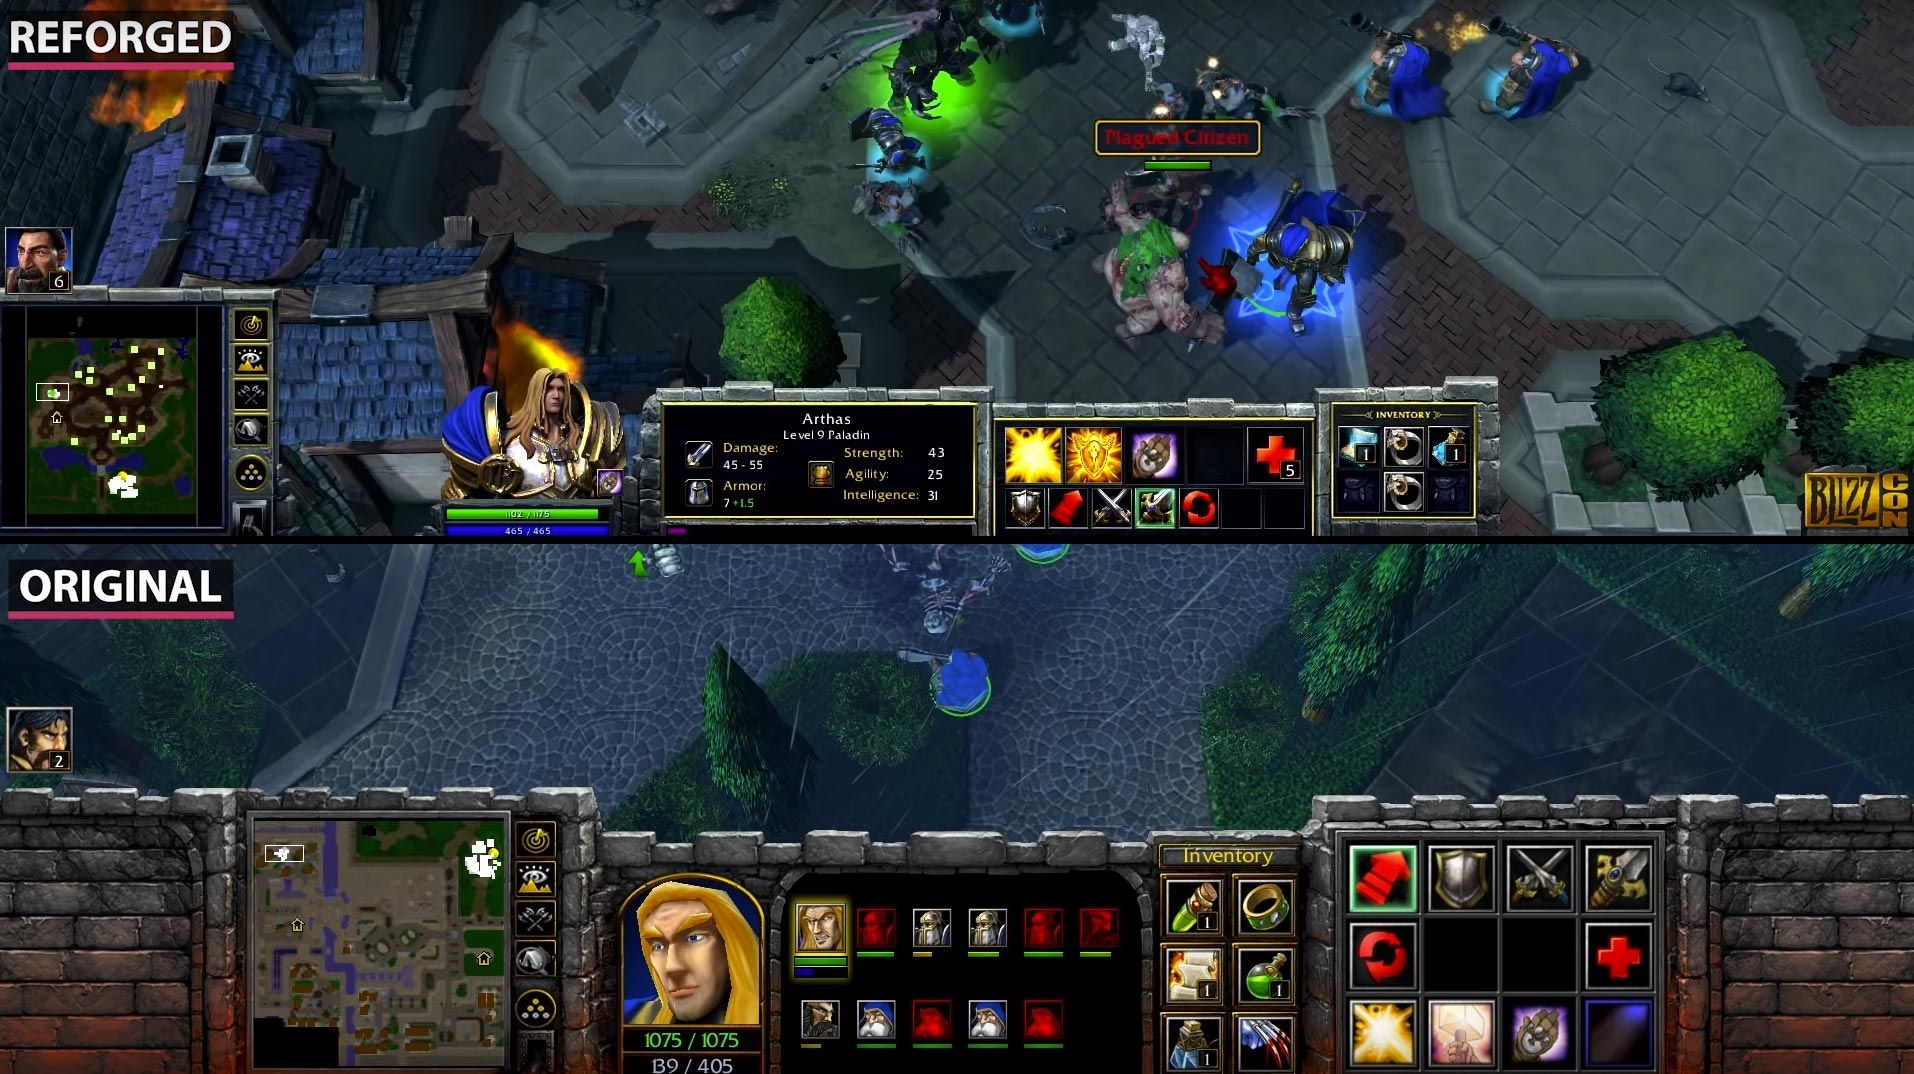 ▷ Warcraft 3 and Warcraft 3 Reforged Comparison (UNITS +